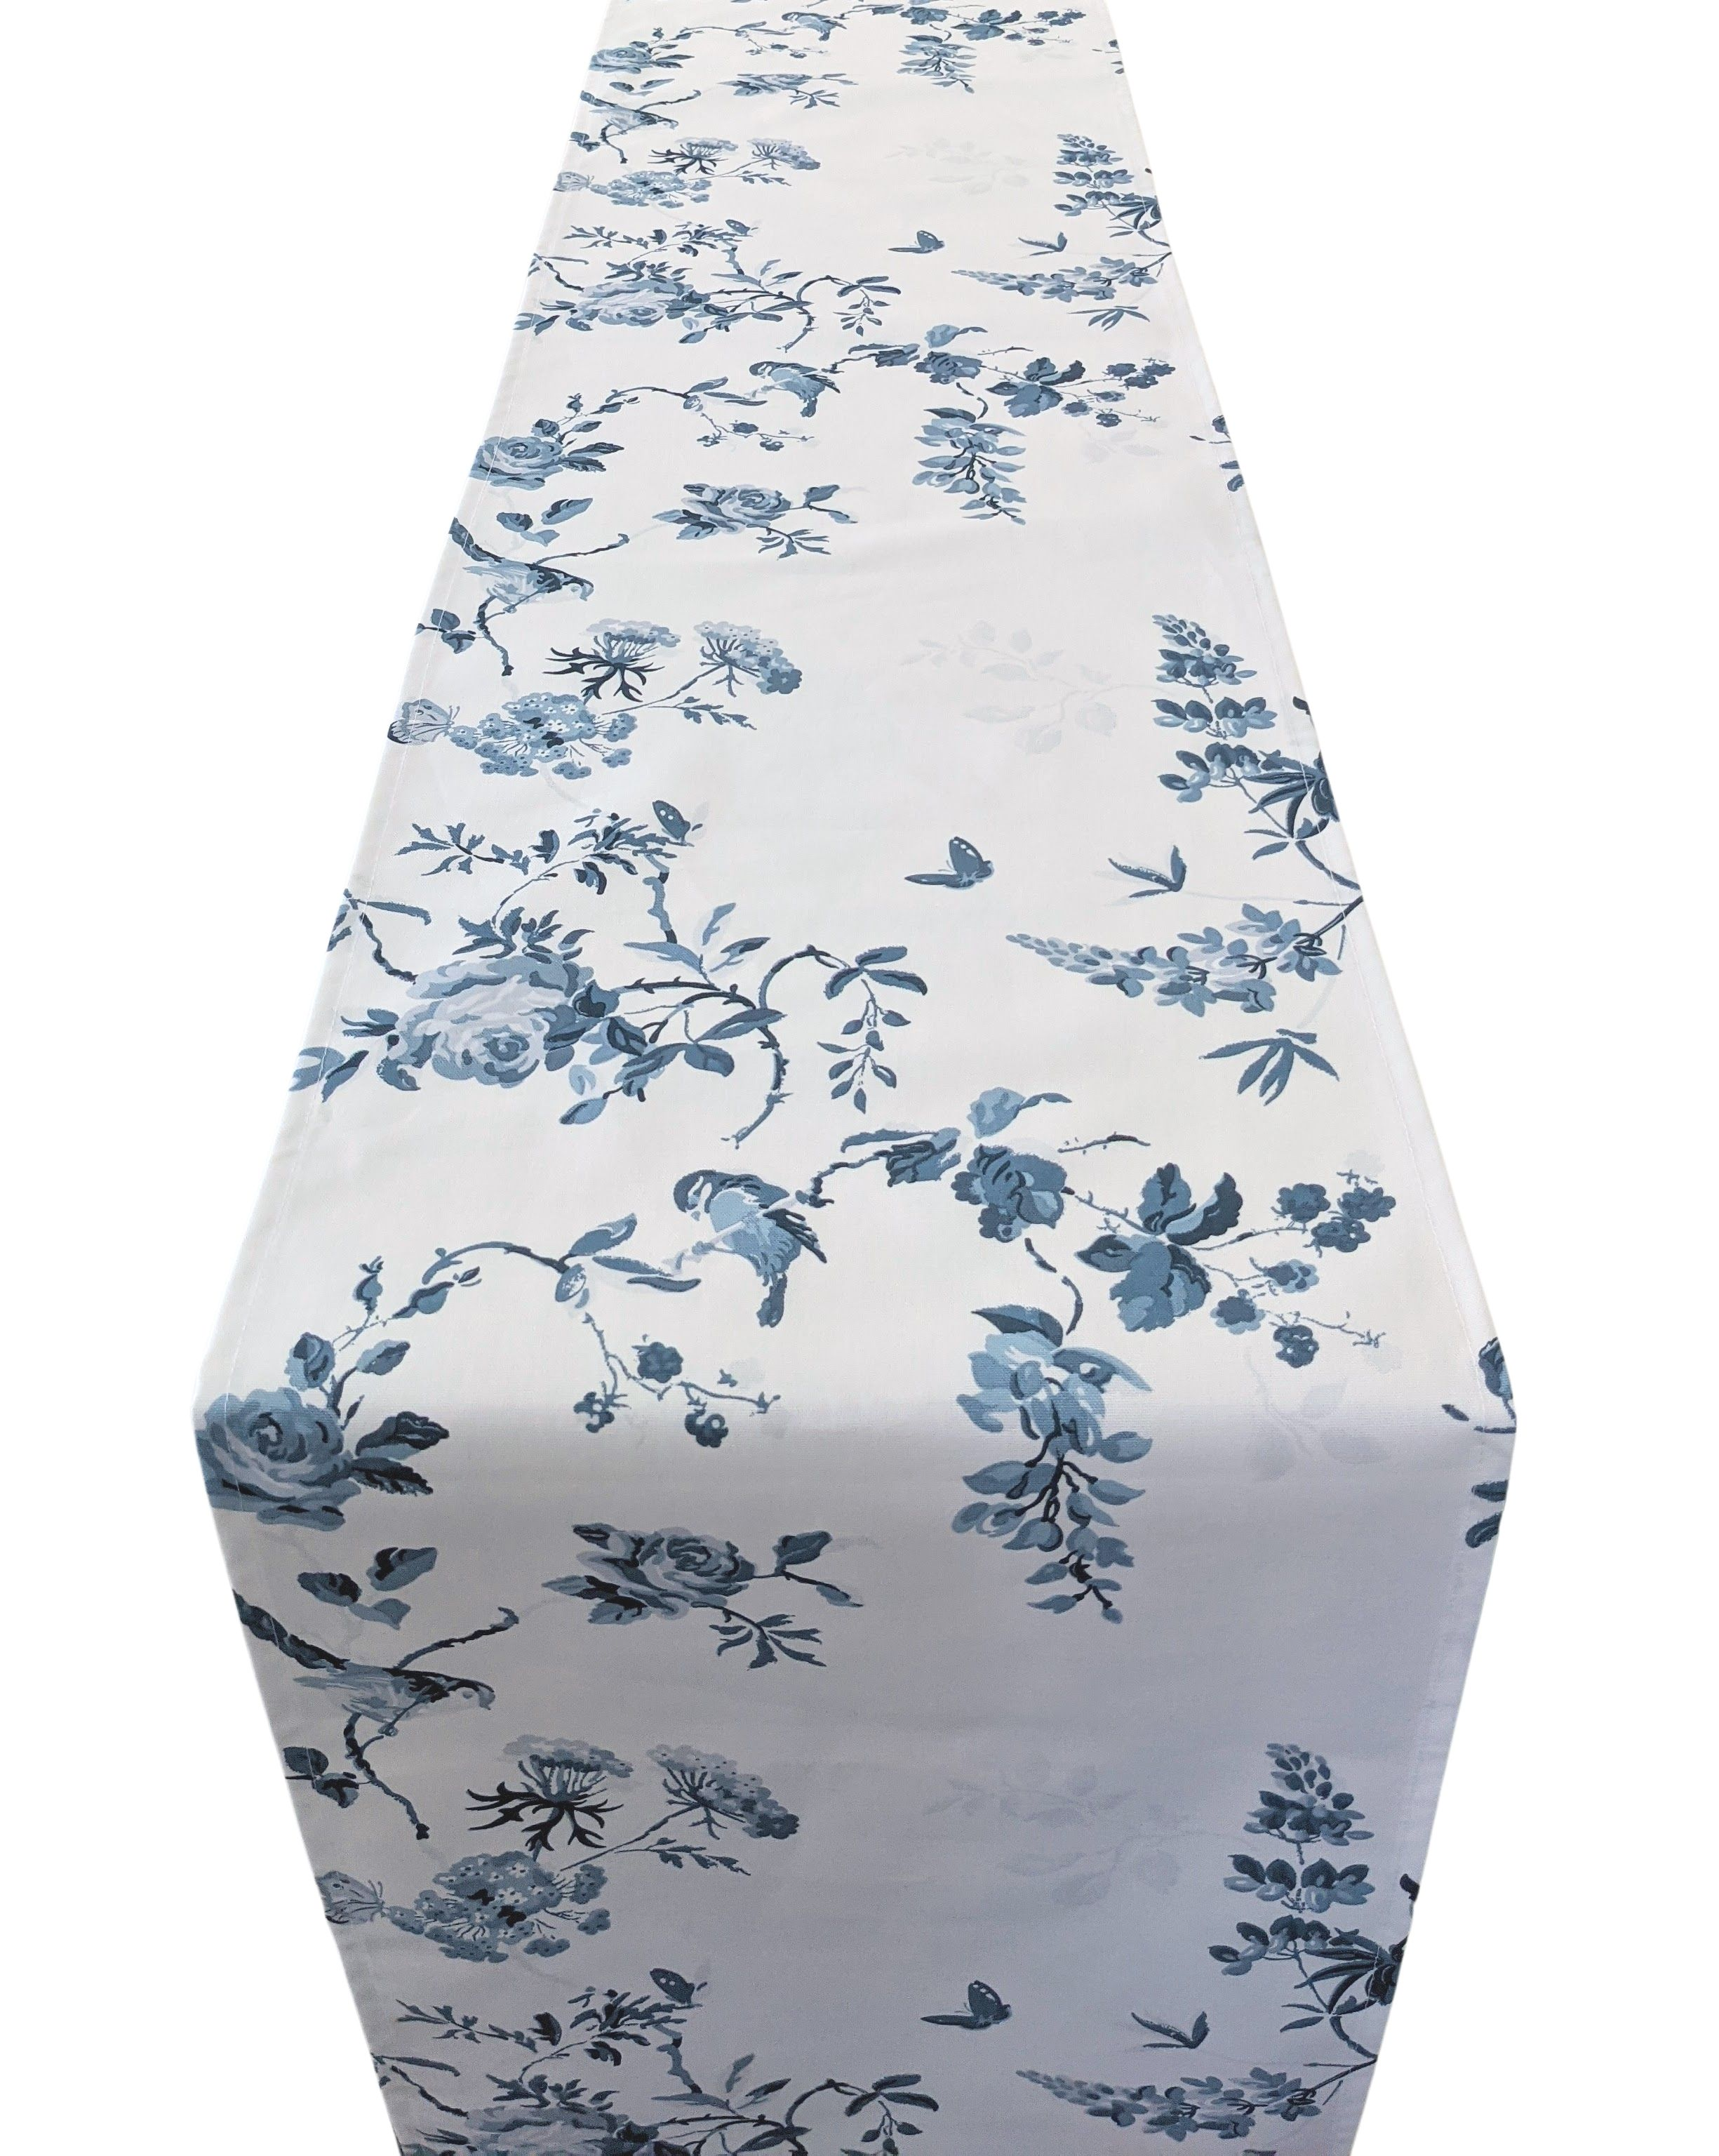 Table Runner in Cath Kidston Blue and White Birds and Roses